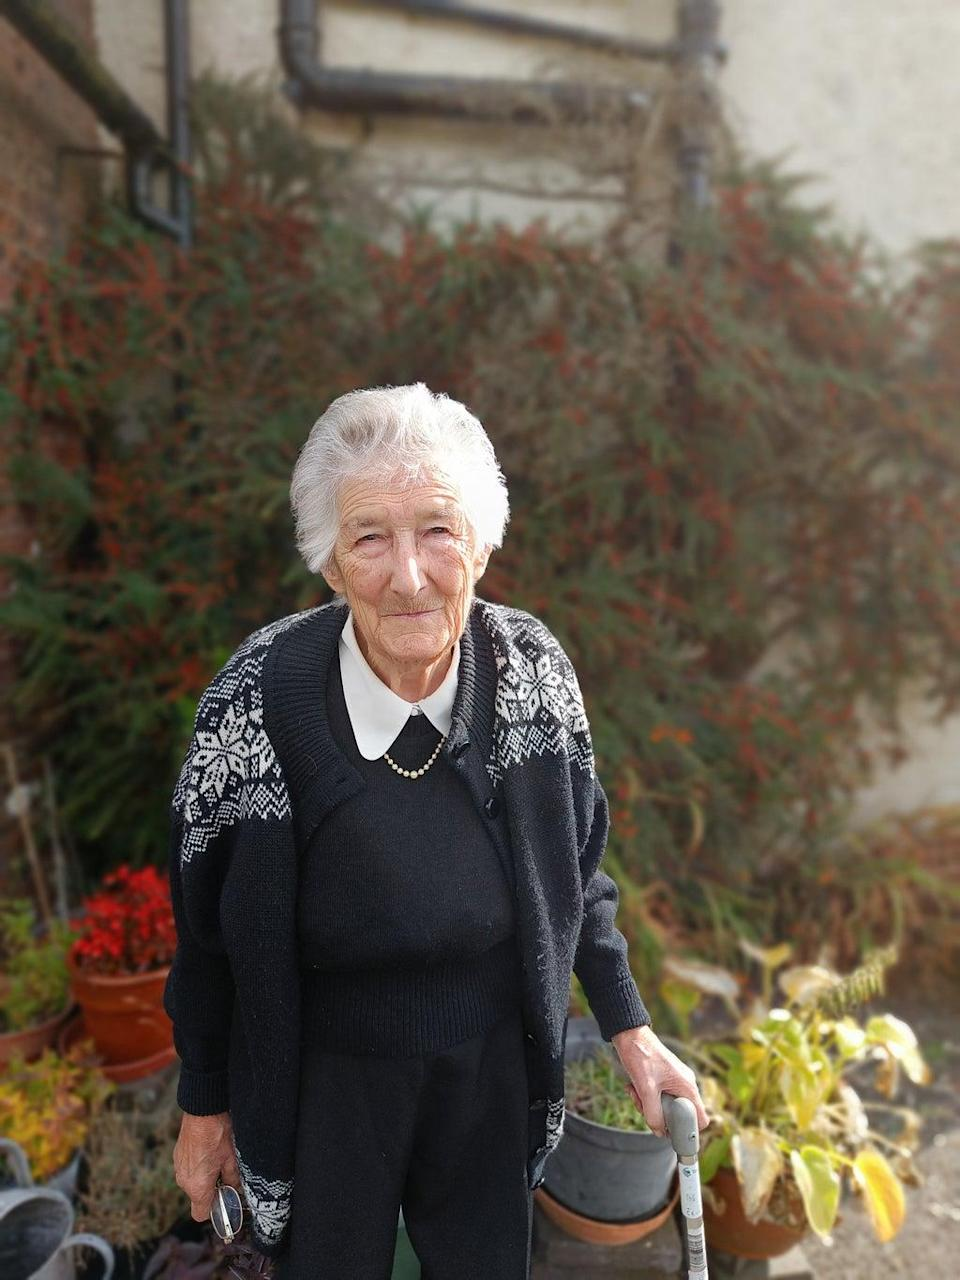 """Sybil Williams said she was in """"constant pain"""" while waiting for care (Handout/PA)"""